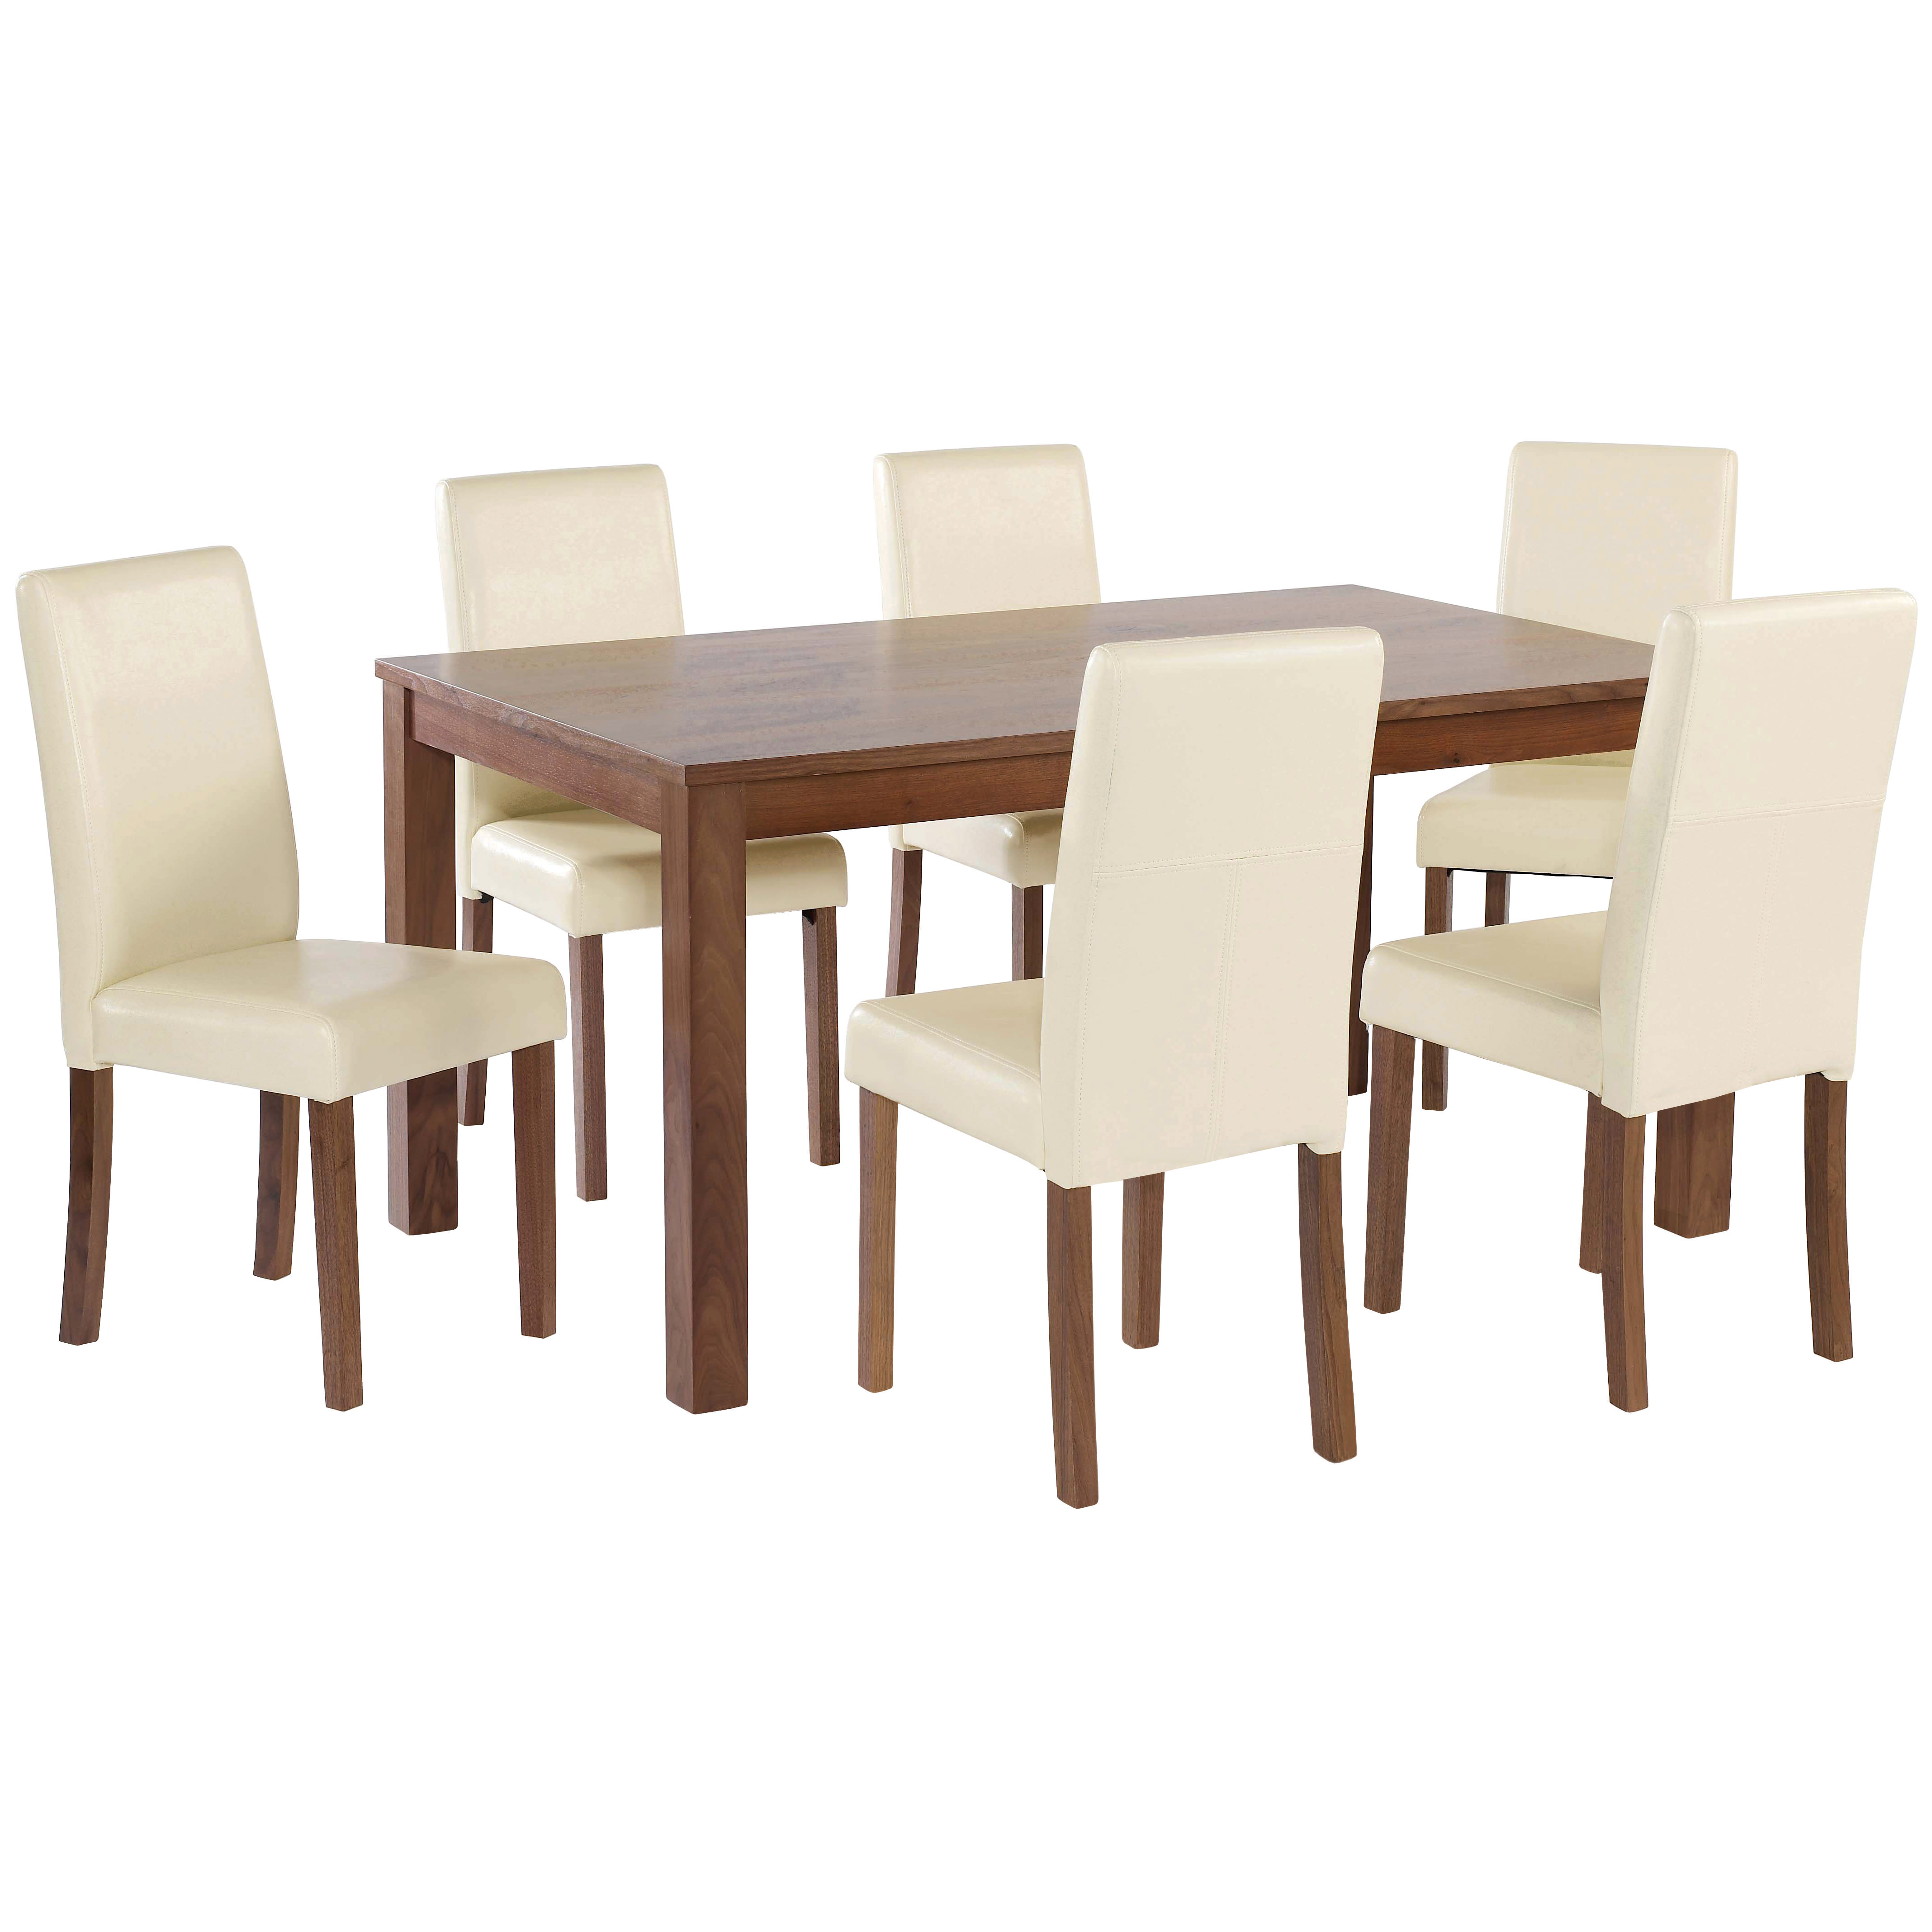 American Walnut Dining Table And Chair Set With 4 6 Seat Black